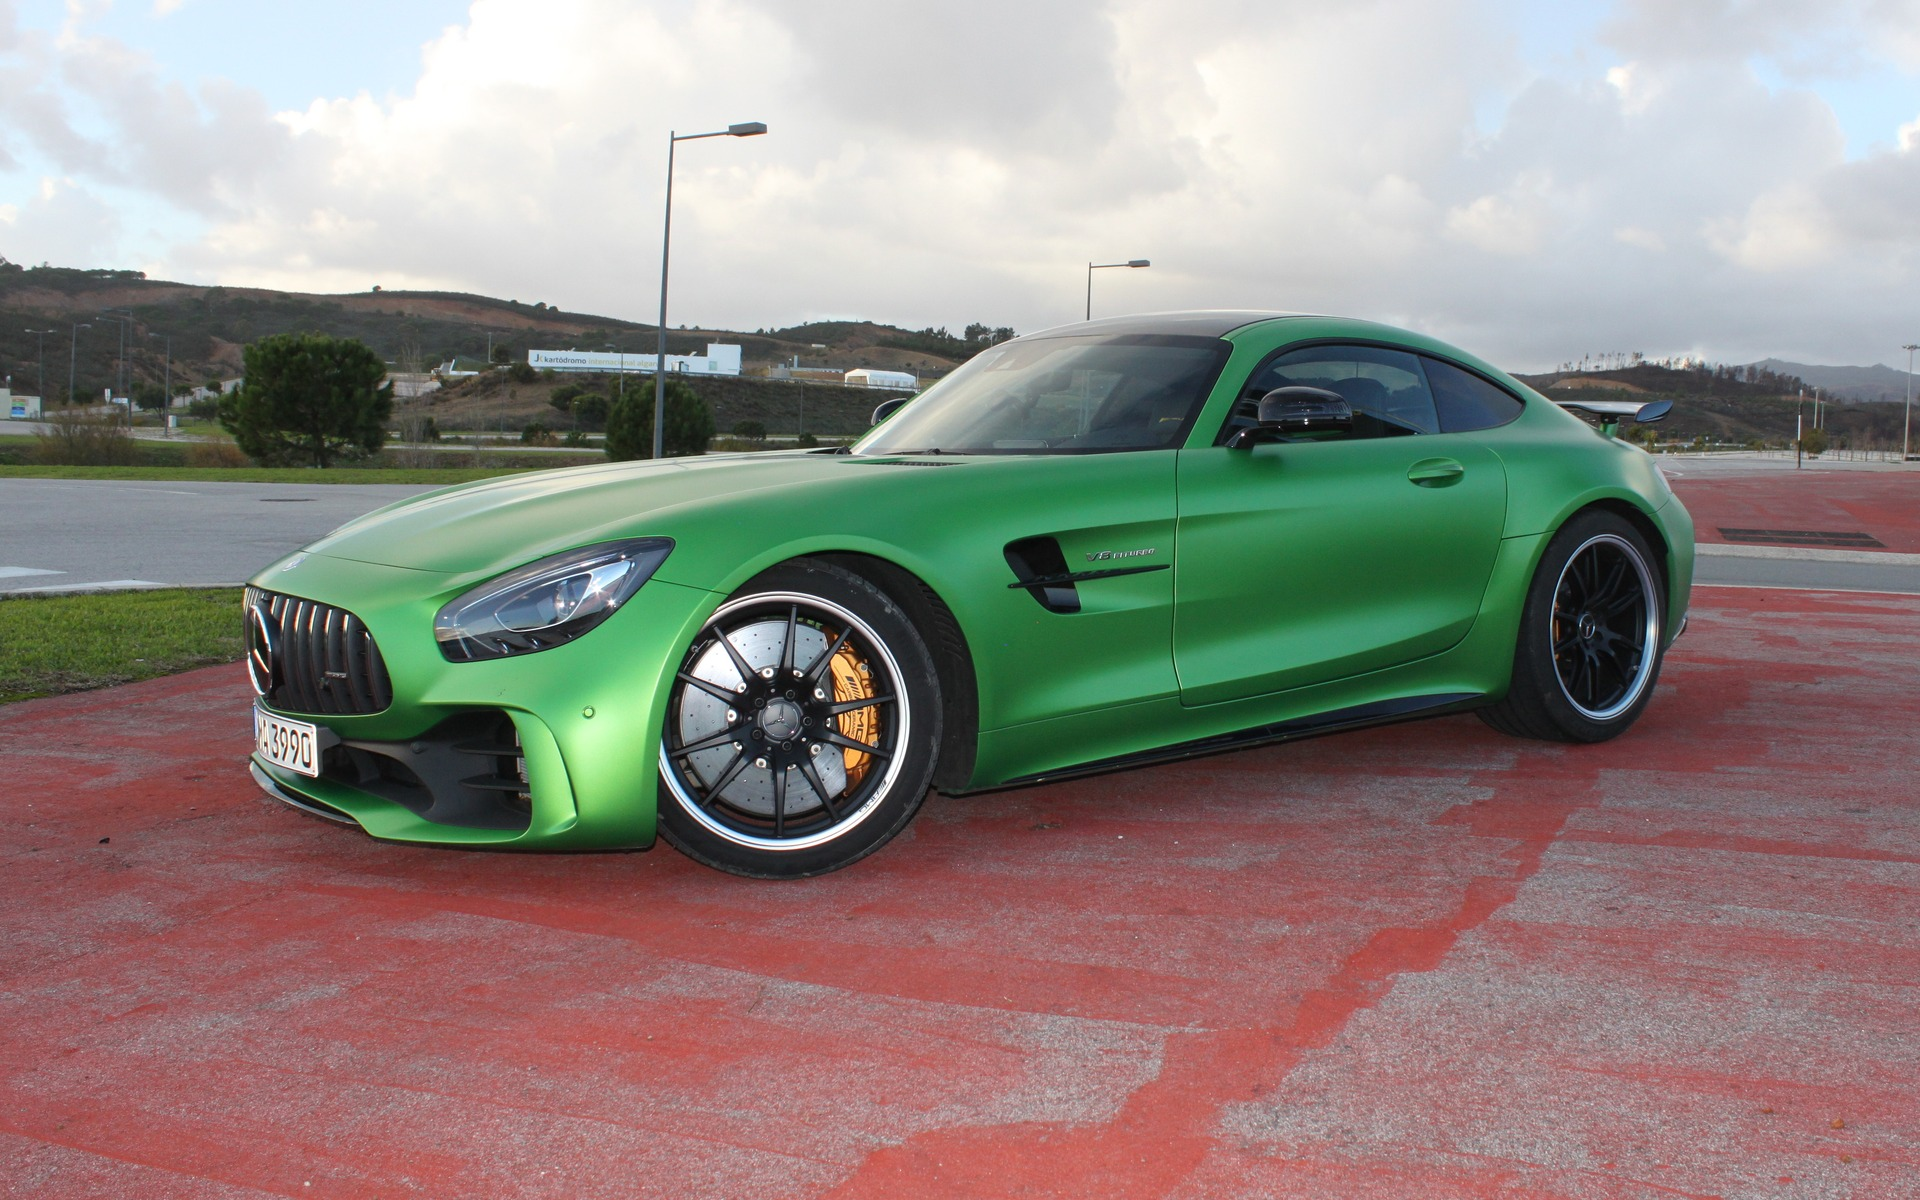 mercedes amg gt r 2018 la voiture verte de l ann e 2 50. Black Bedroom Furniture Sets. Home Design Ideas